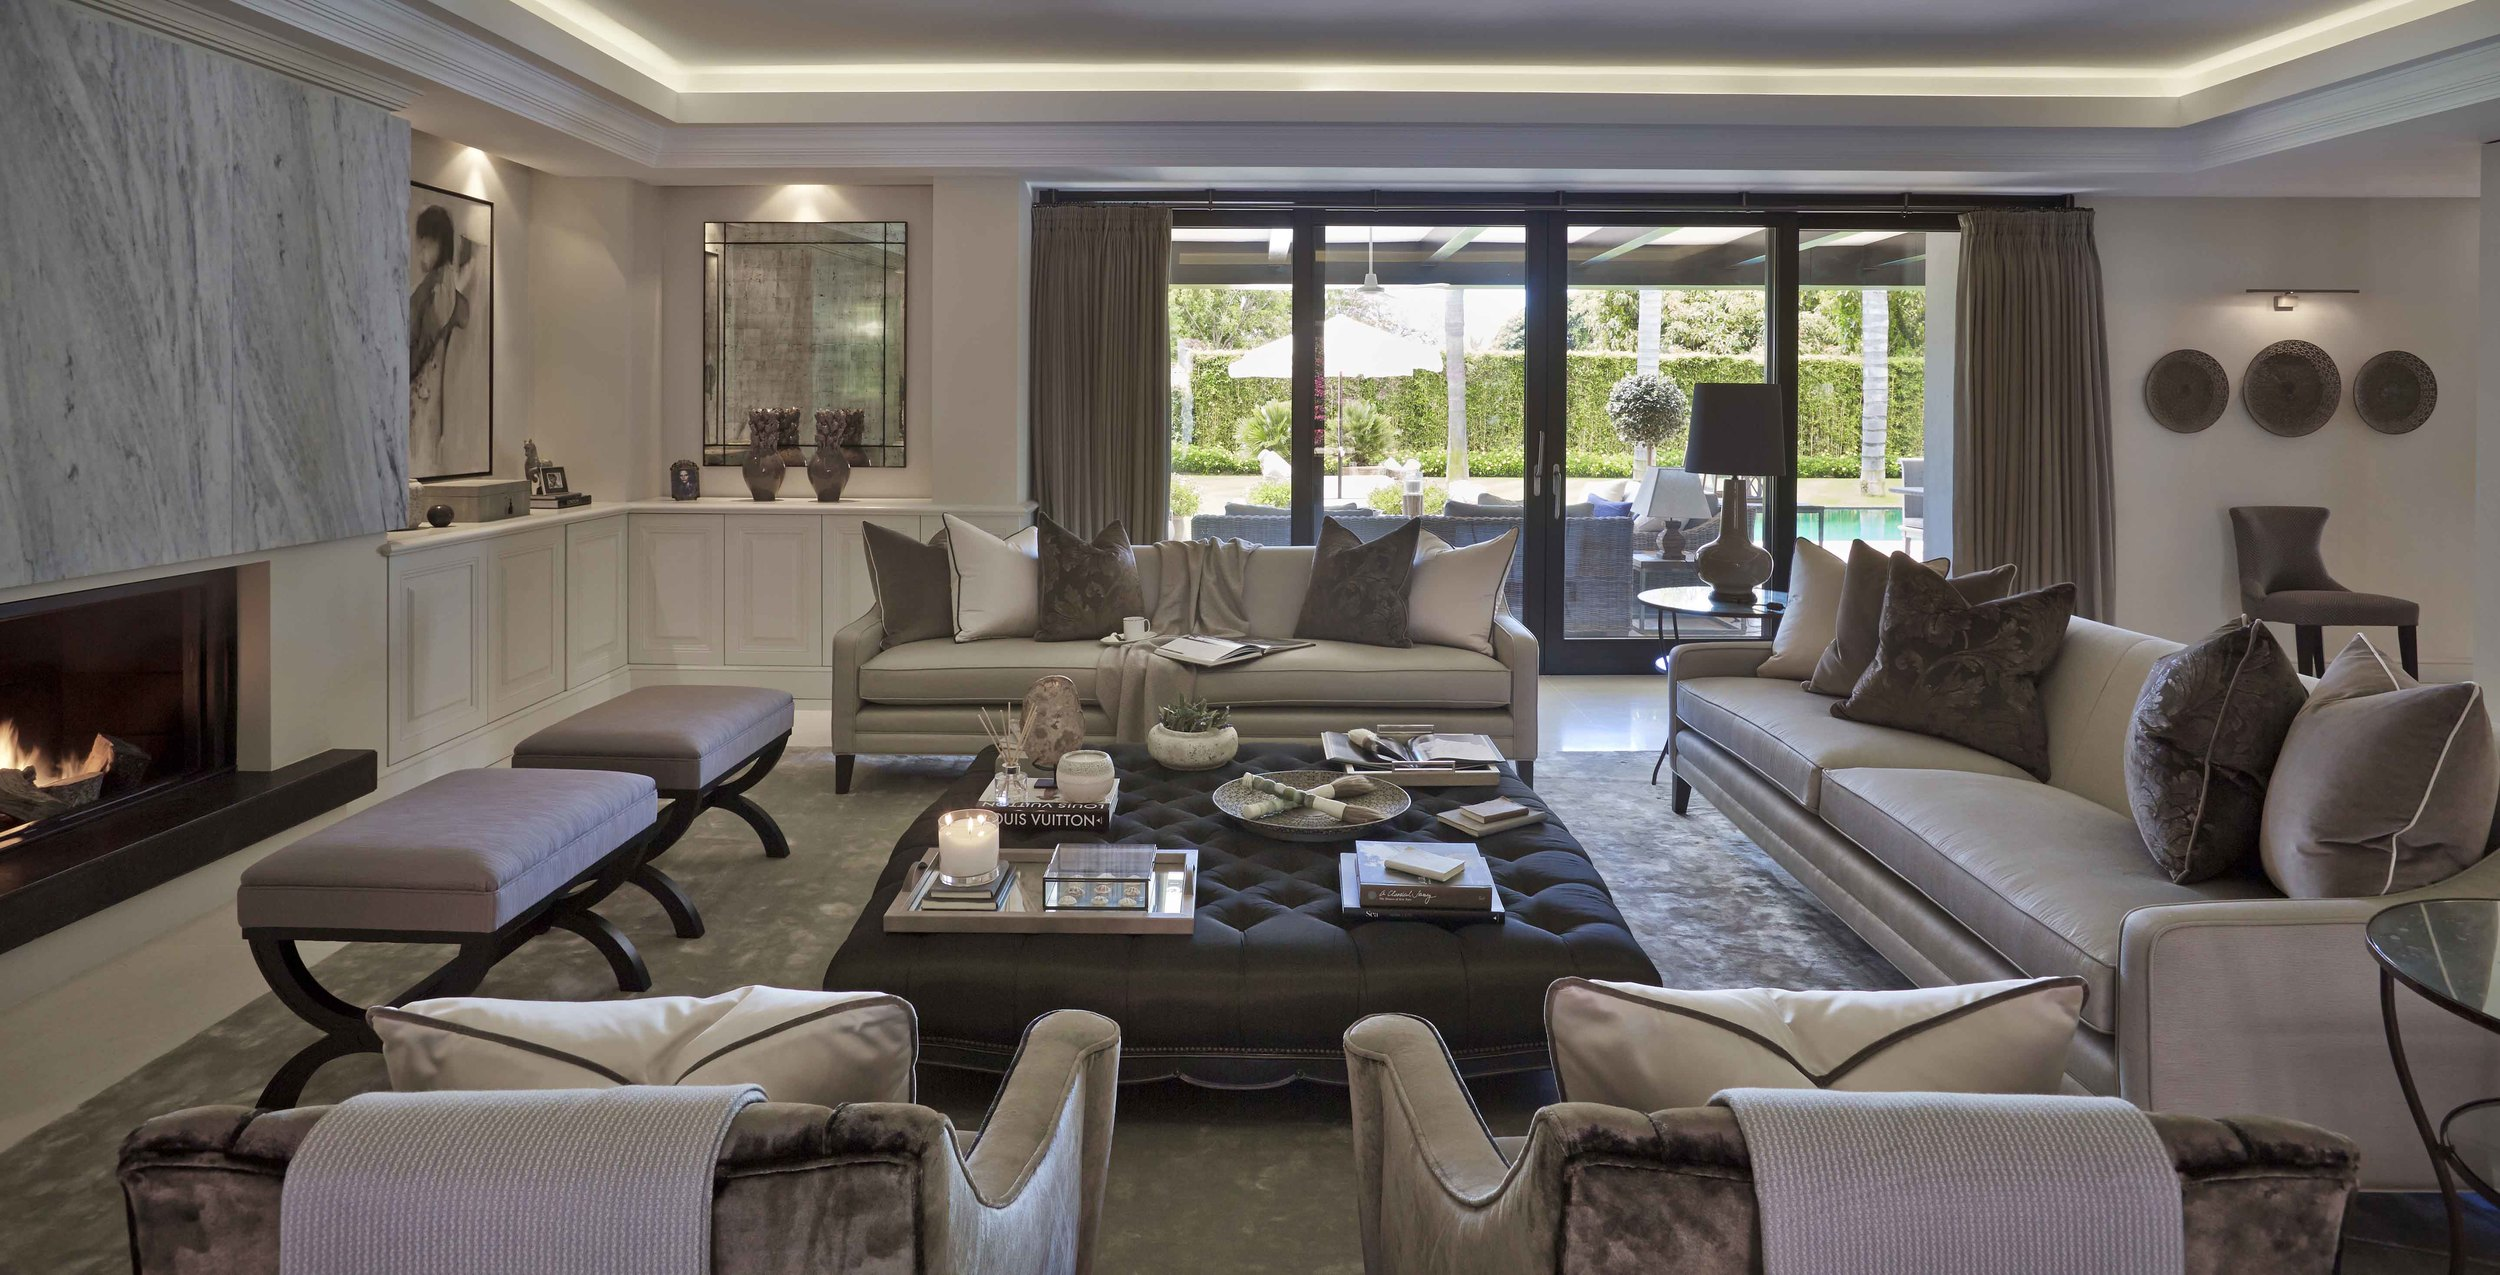 10 mind blowing luxury interior designs Luxury and Me